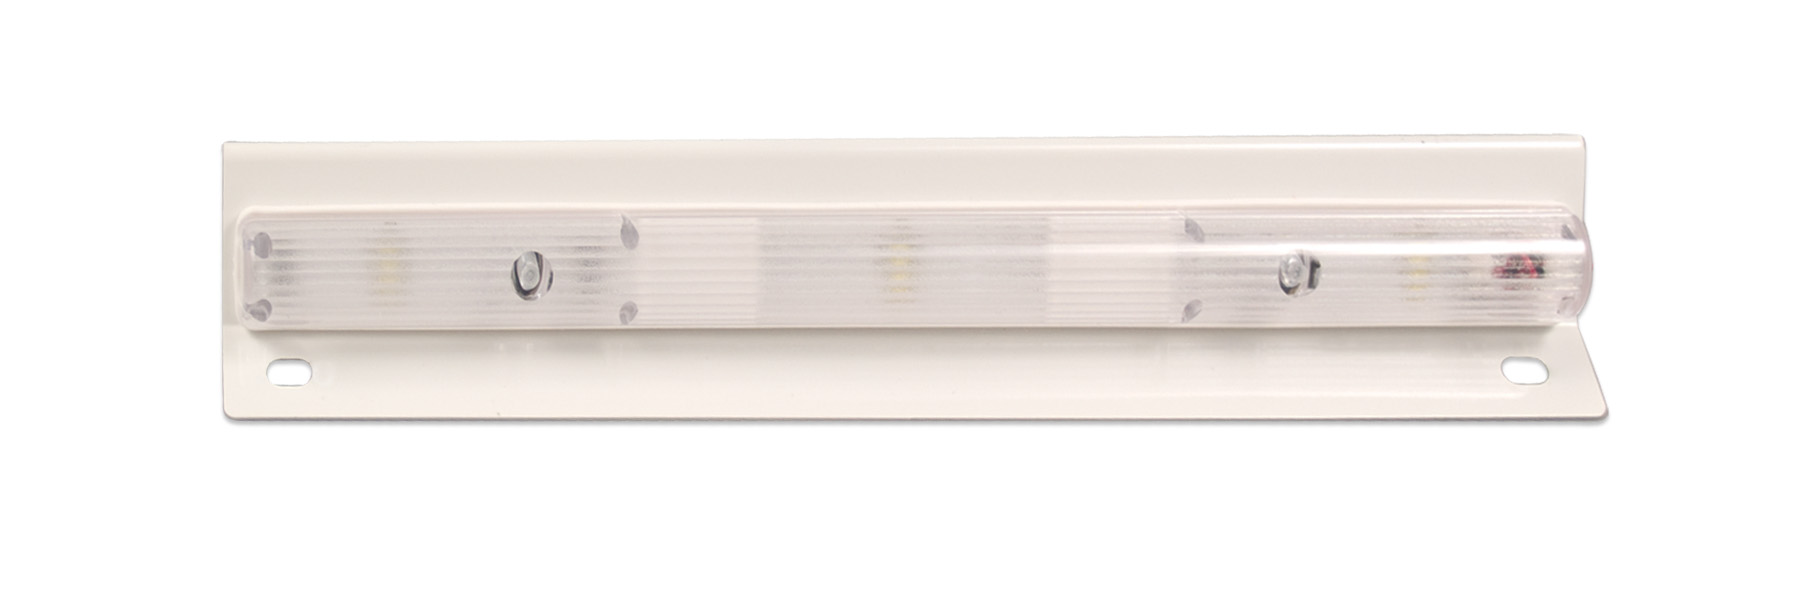 LED 90 Degree Corner Mount Strip Light Product Image